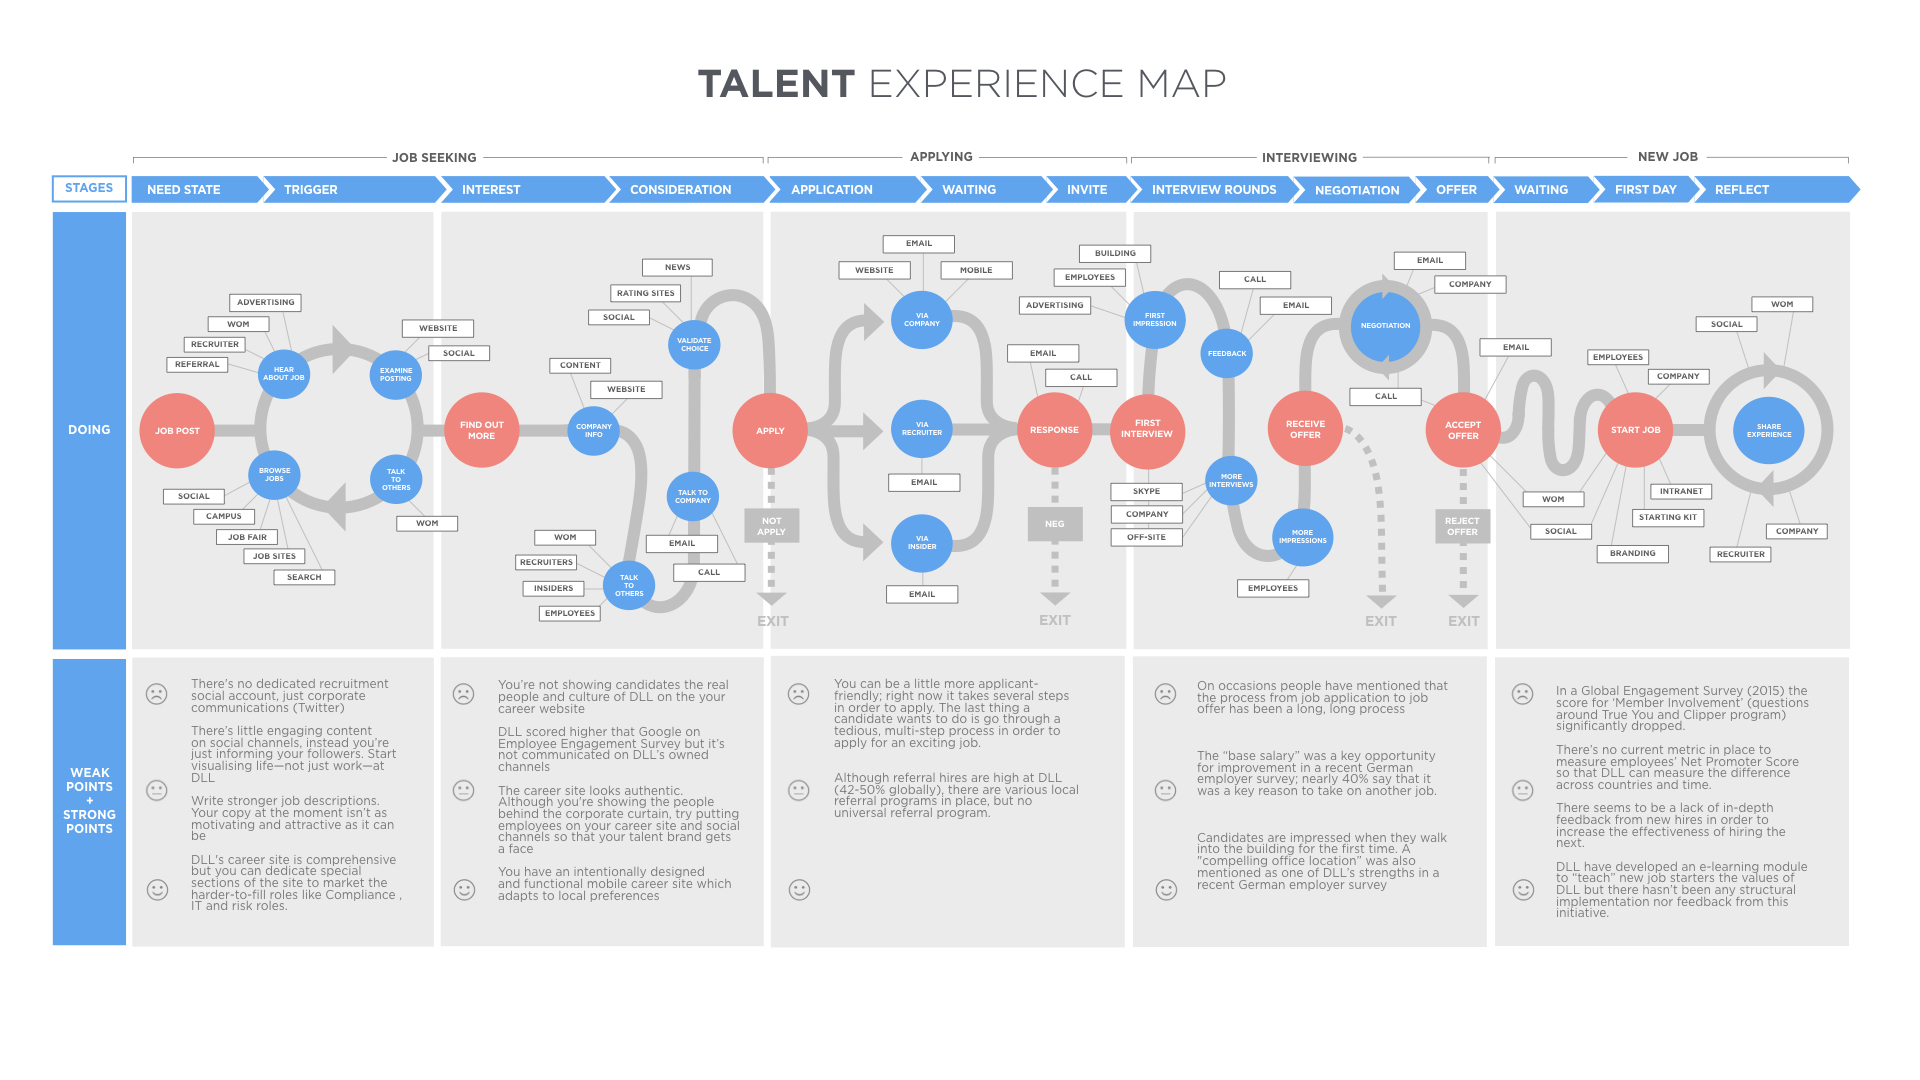 Journey mapping for talent acquisition